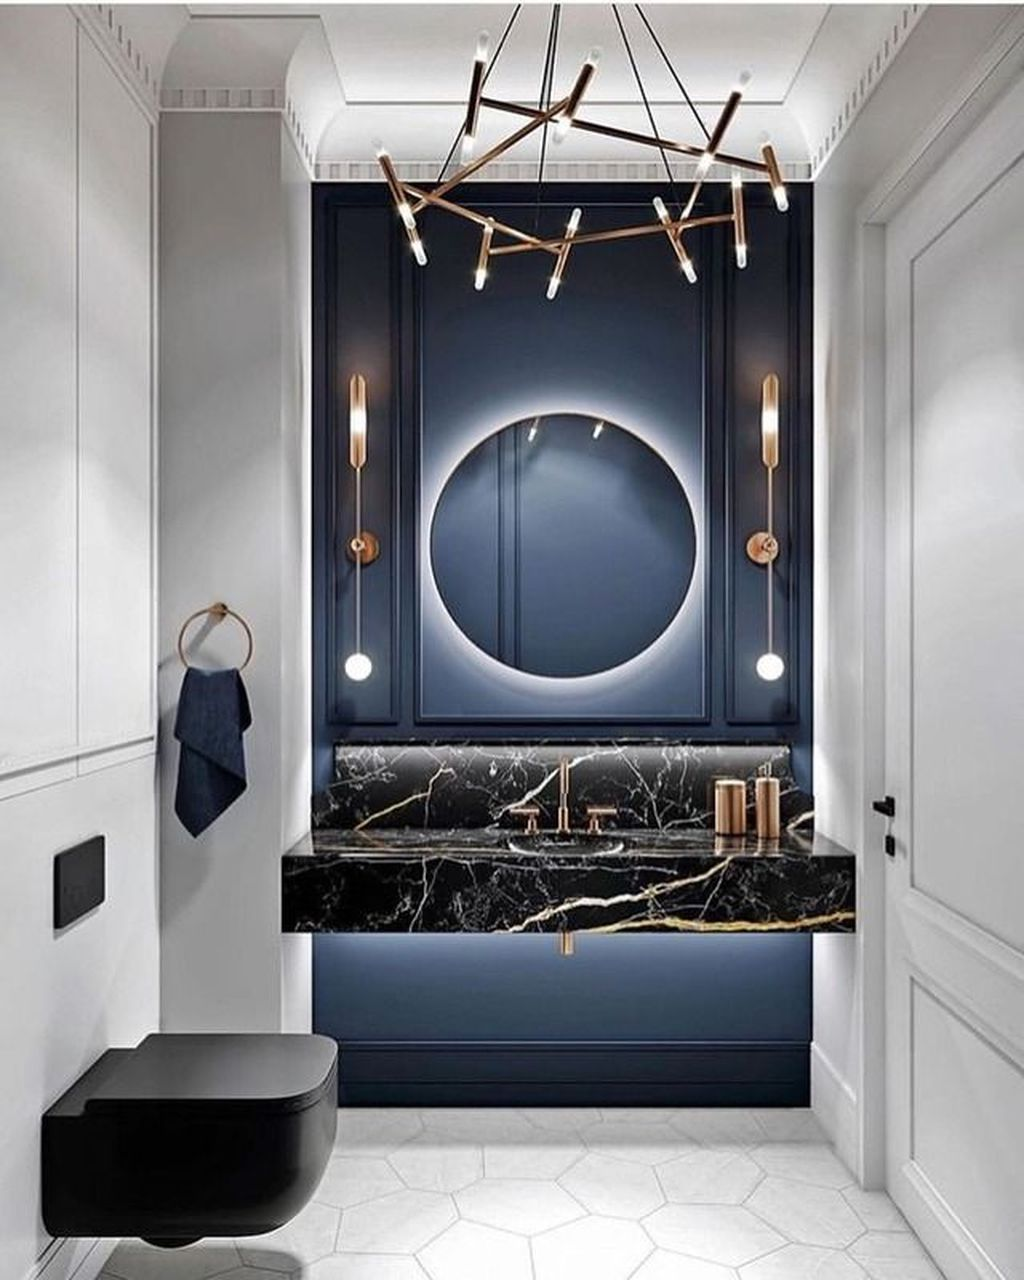 Luxury Bathroom Design And Decor Ideas 22